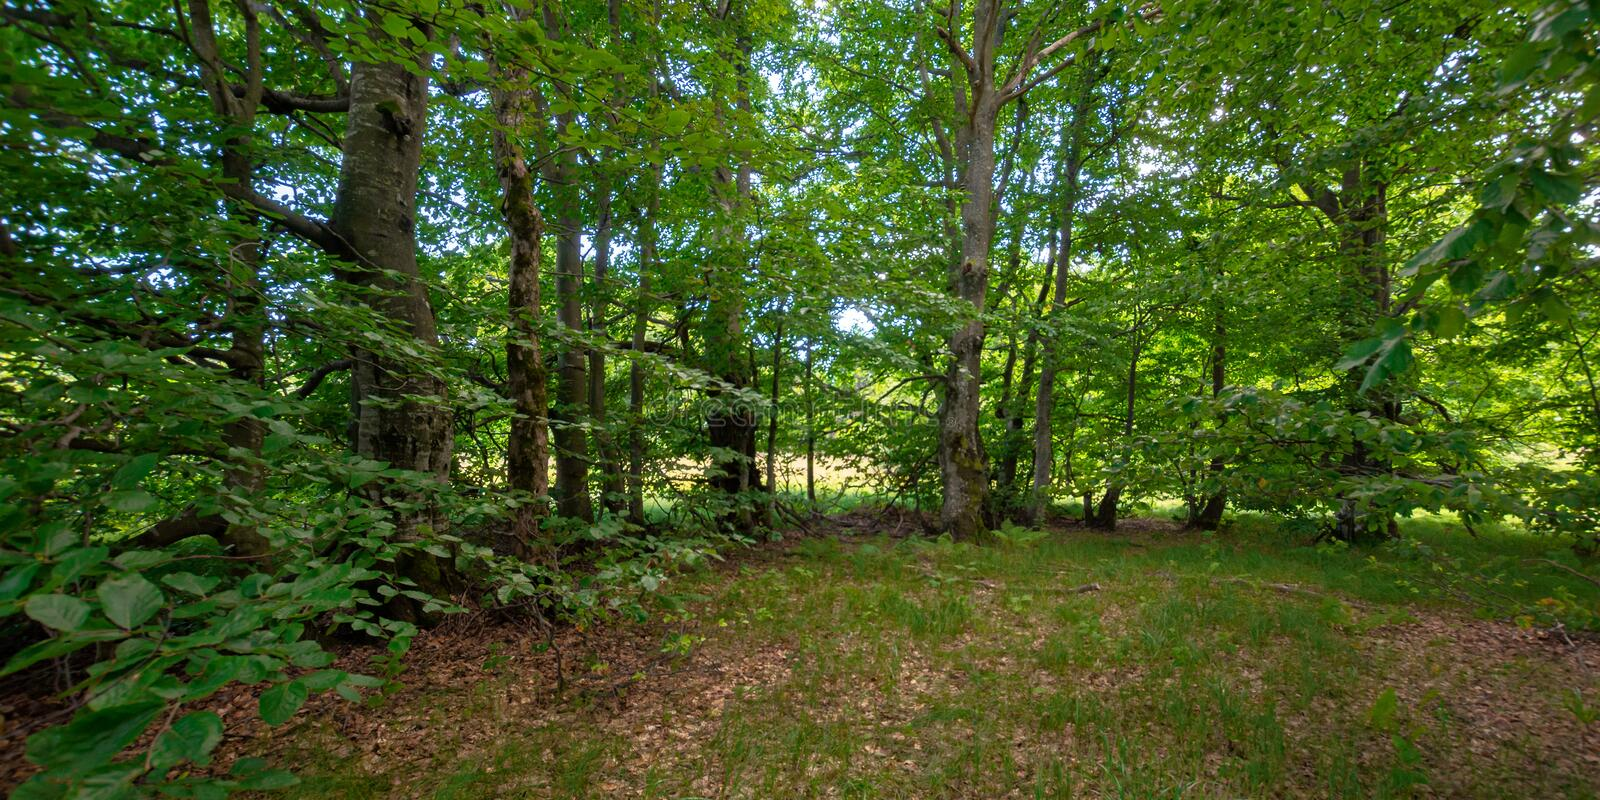 green beech forest in summer. wonderful nature background. lush foliage royalty free stock image